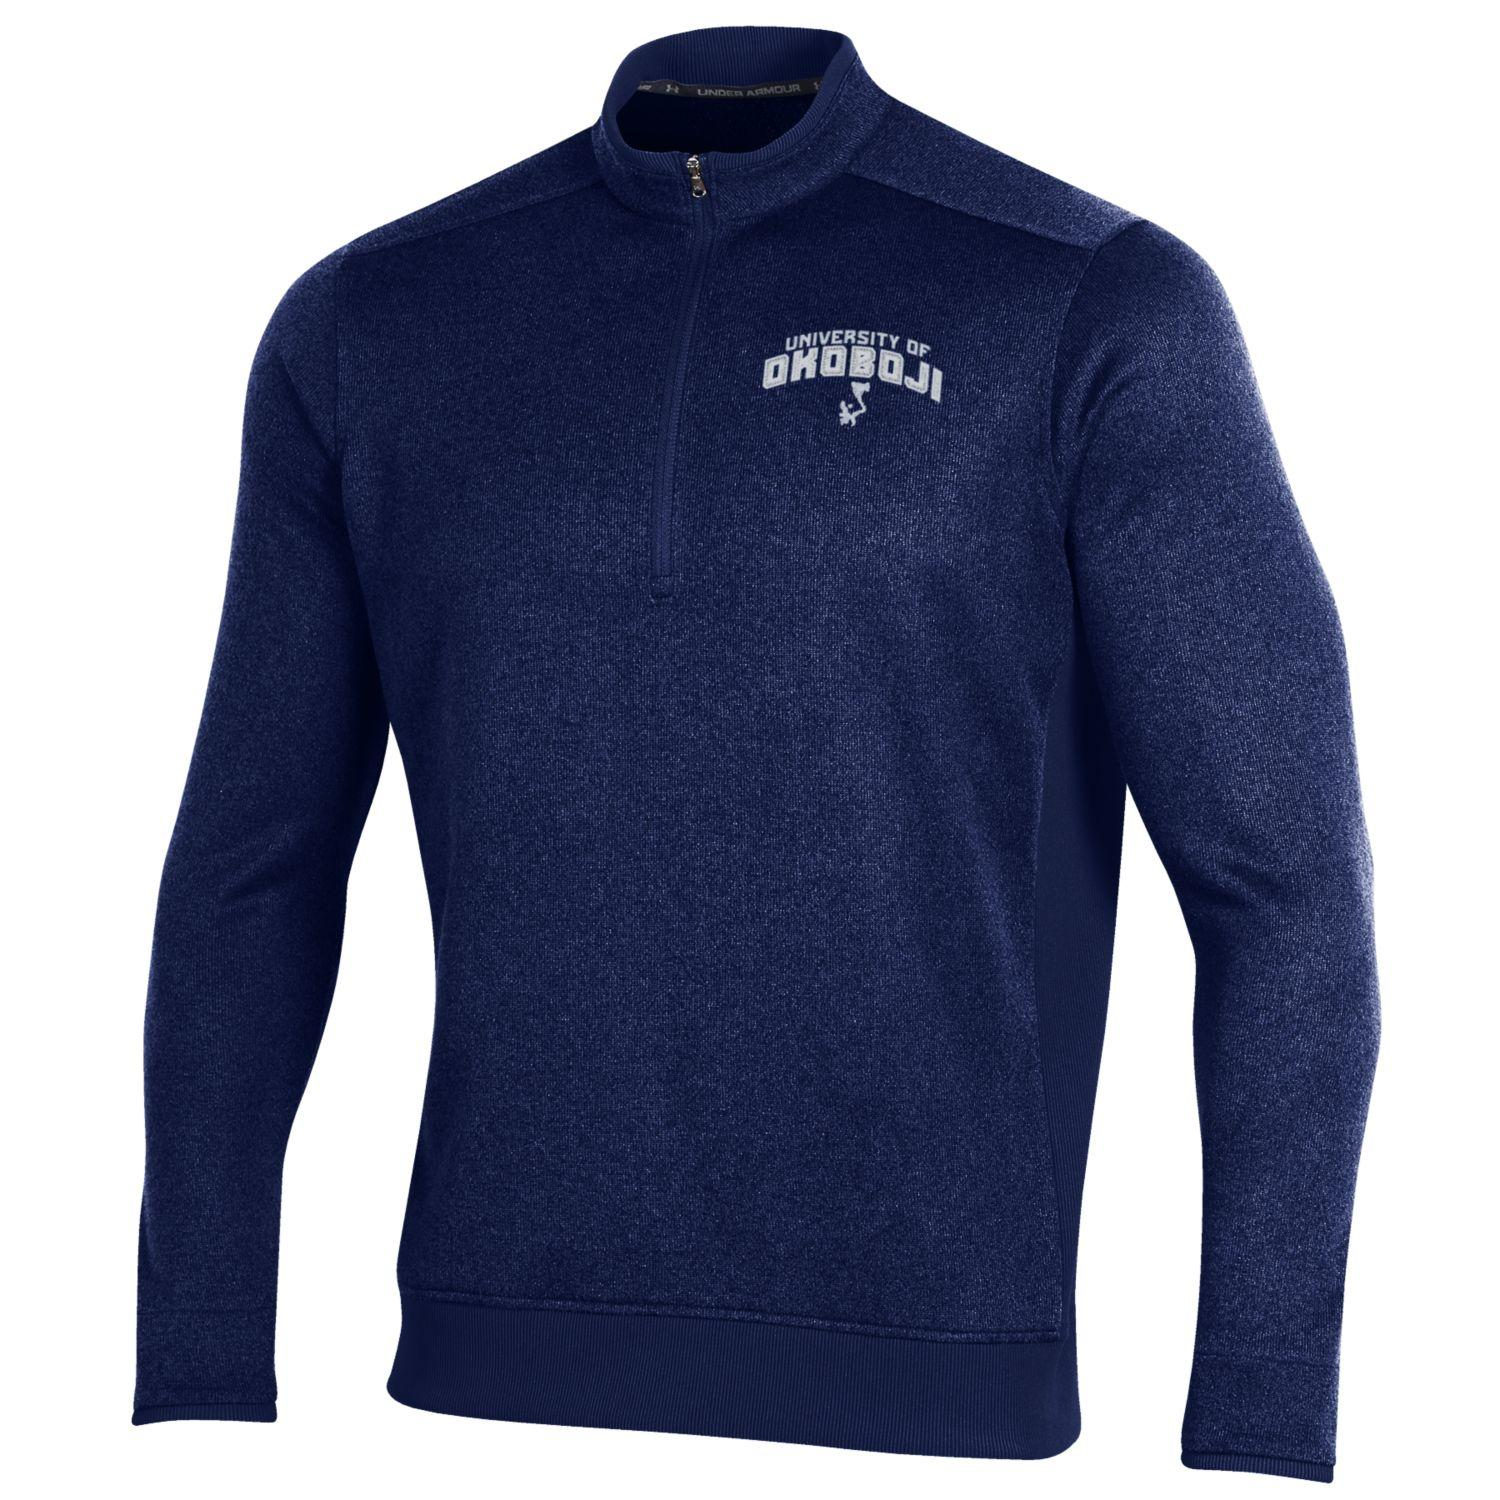 University of Okoboji - Storm Sweater Fleece - Navy